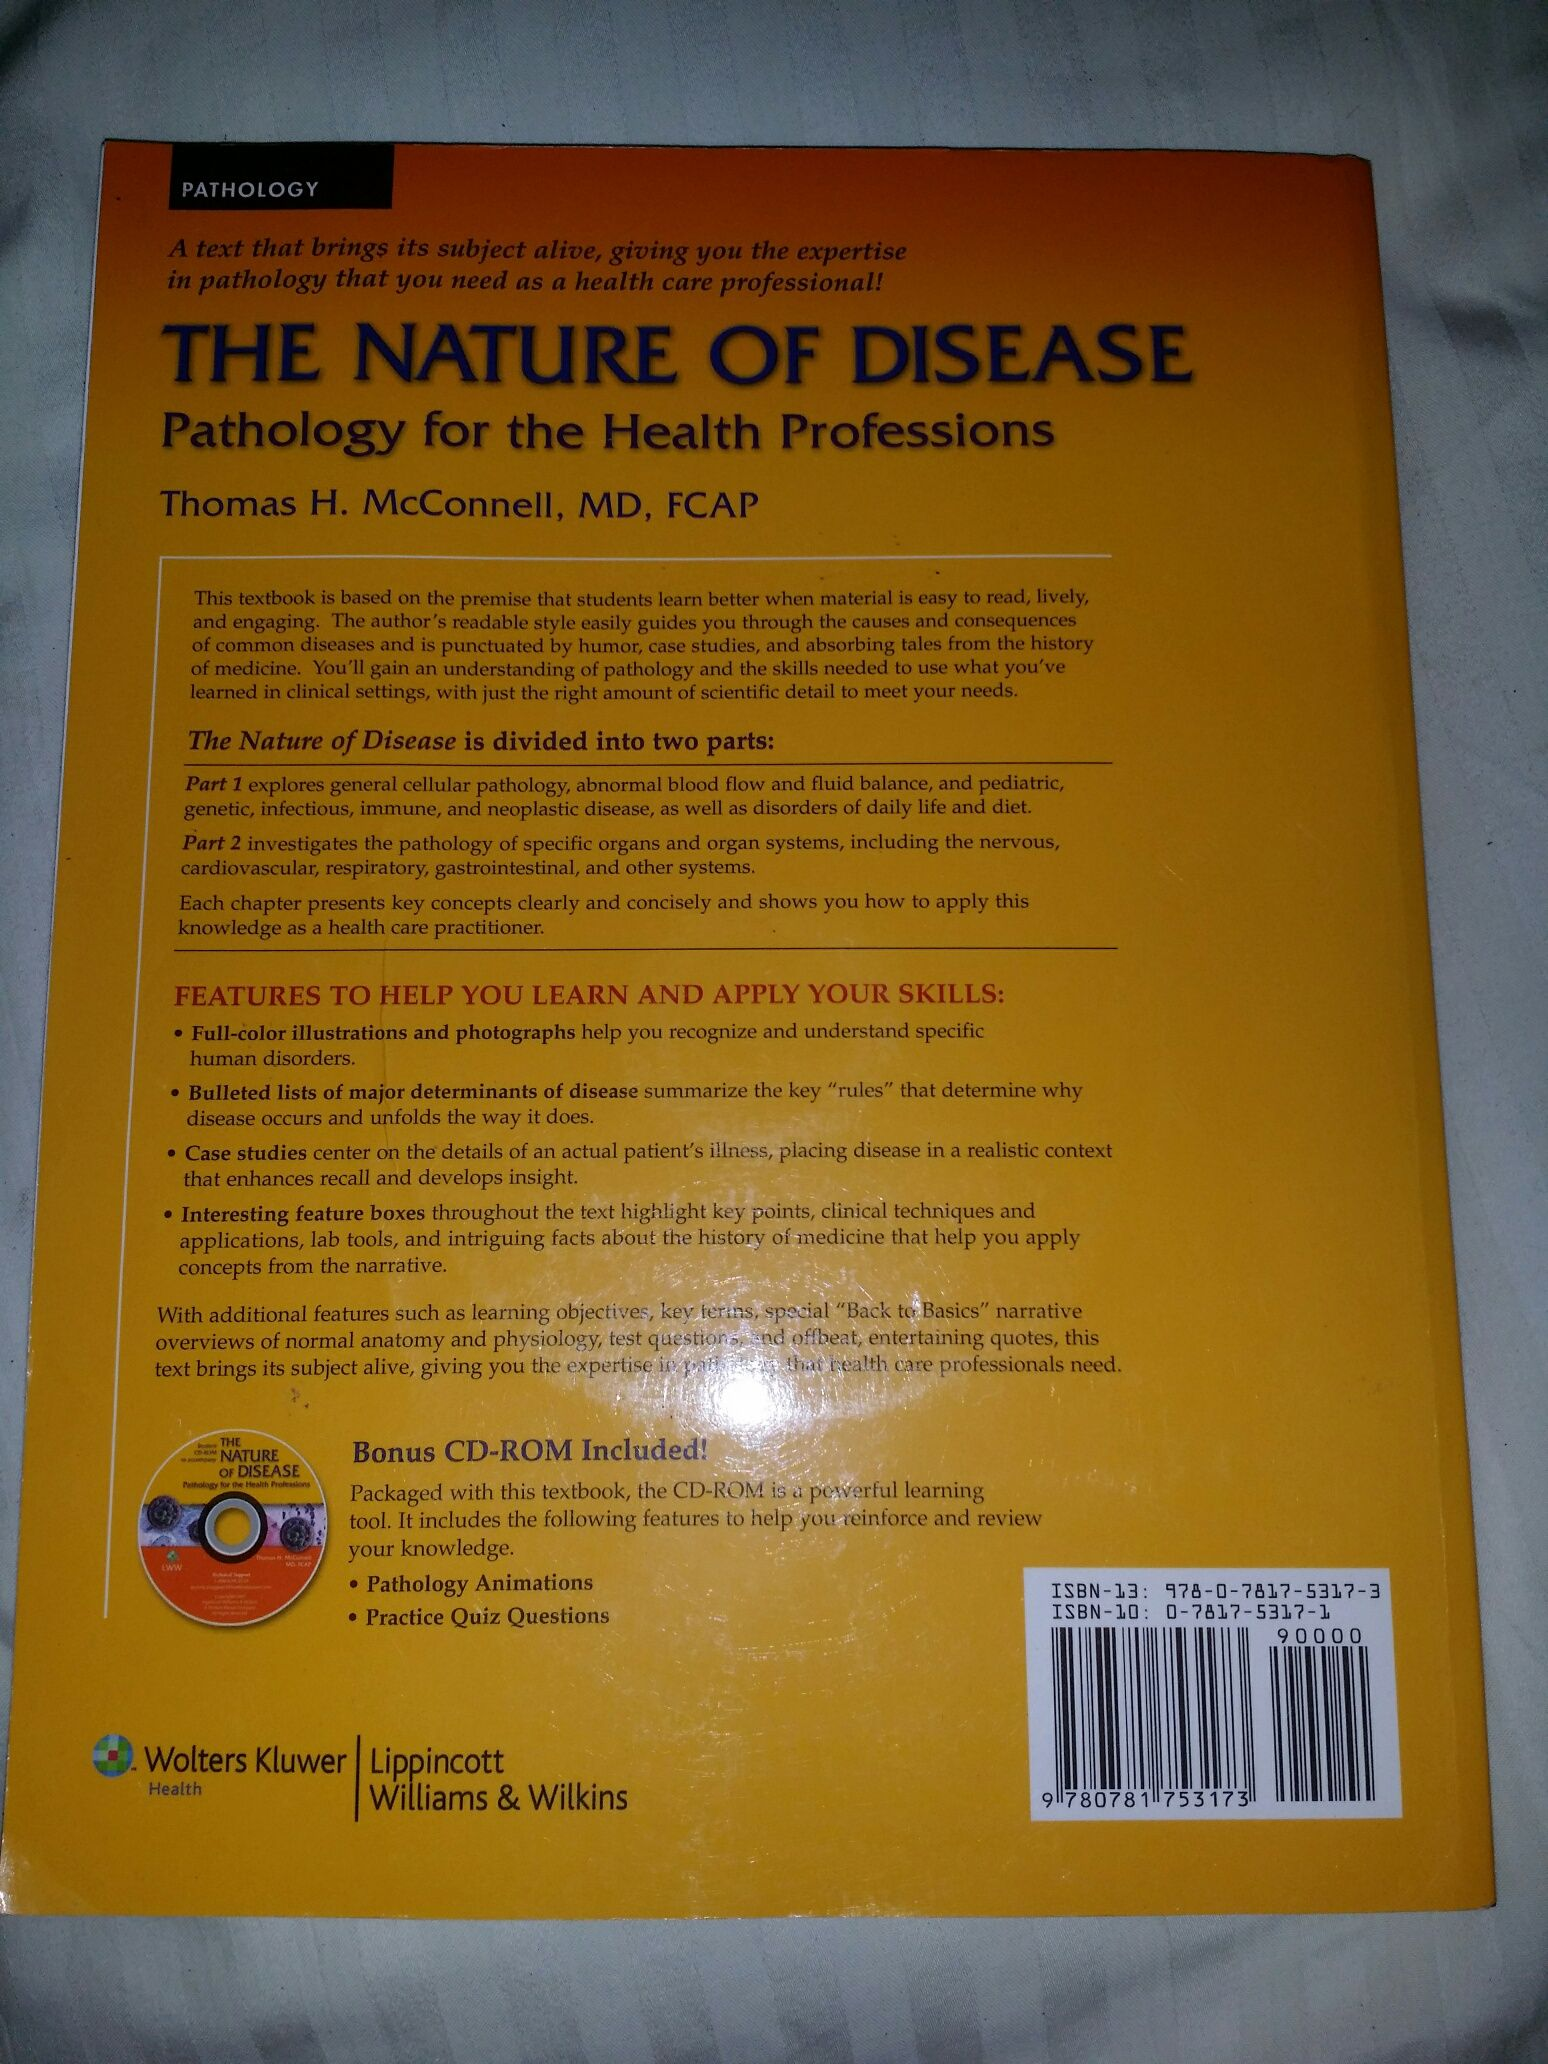 9780781753173 - The The Nature of Disease Pathology for the Health ...